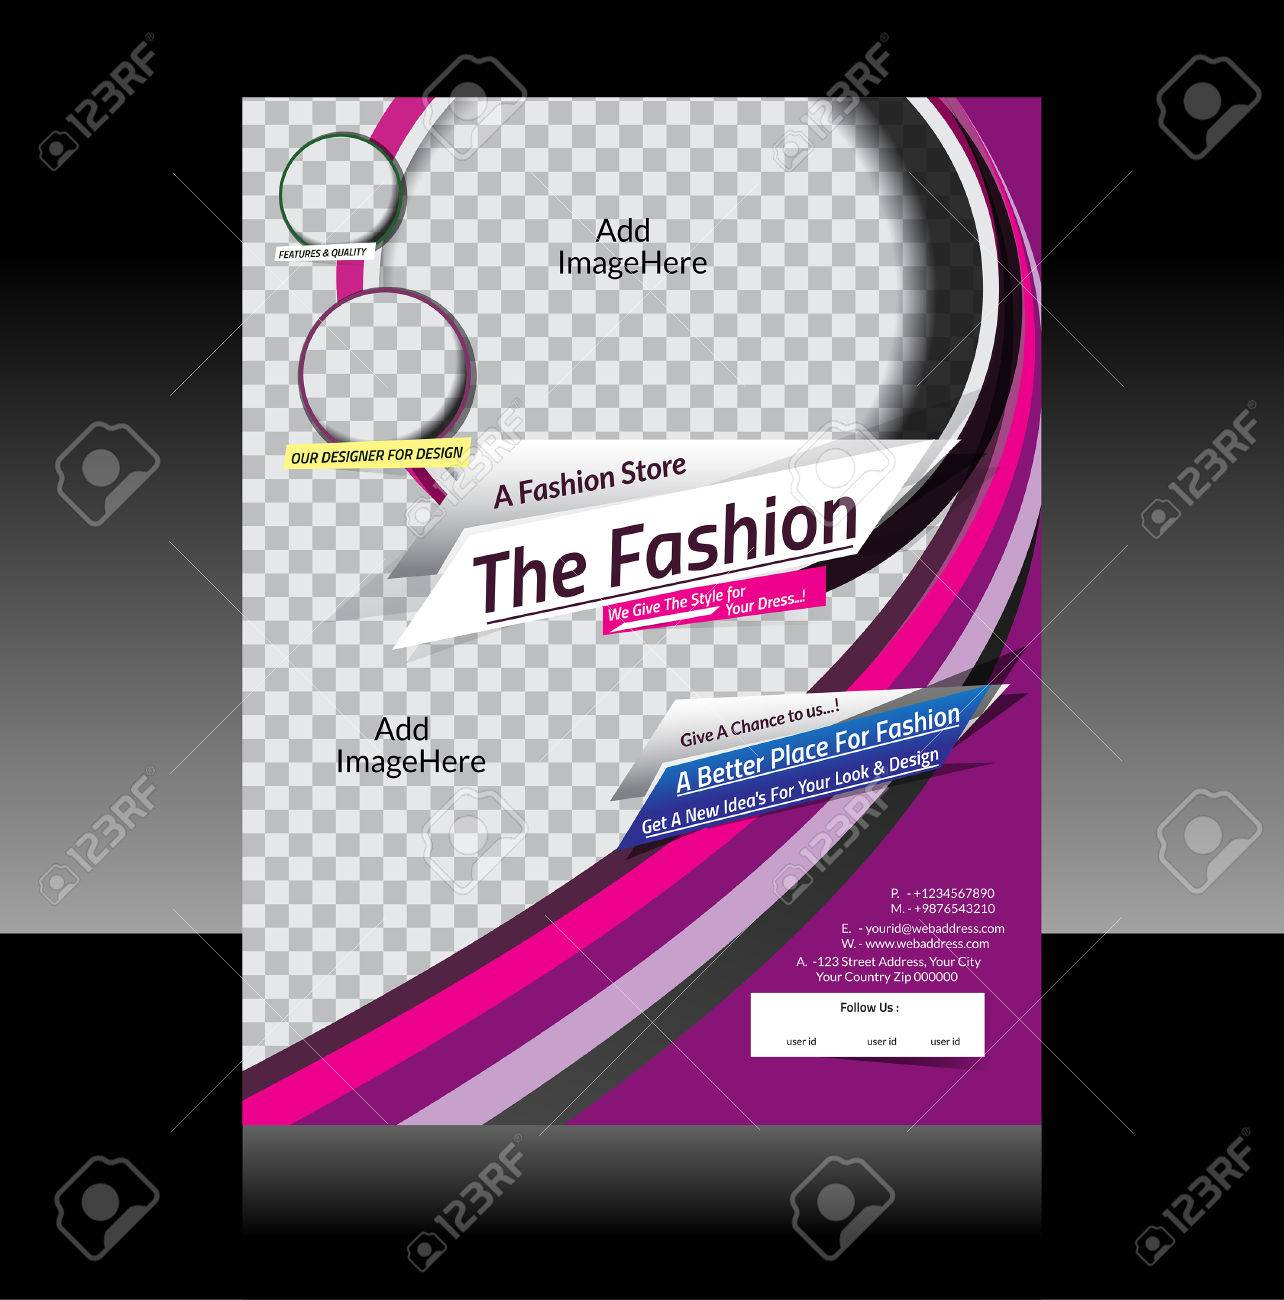 fashion flyer design vector illustration royalty free cliparts